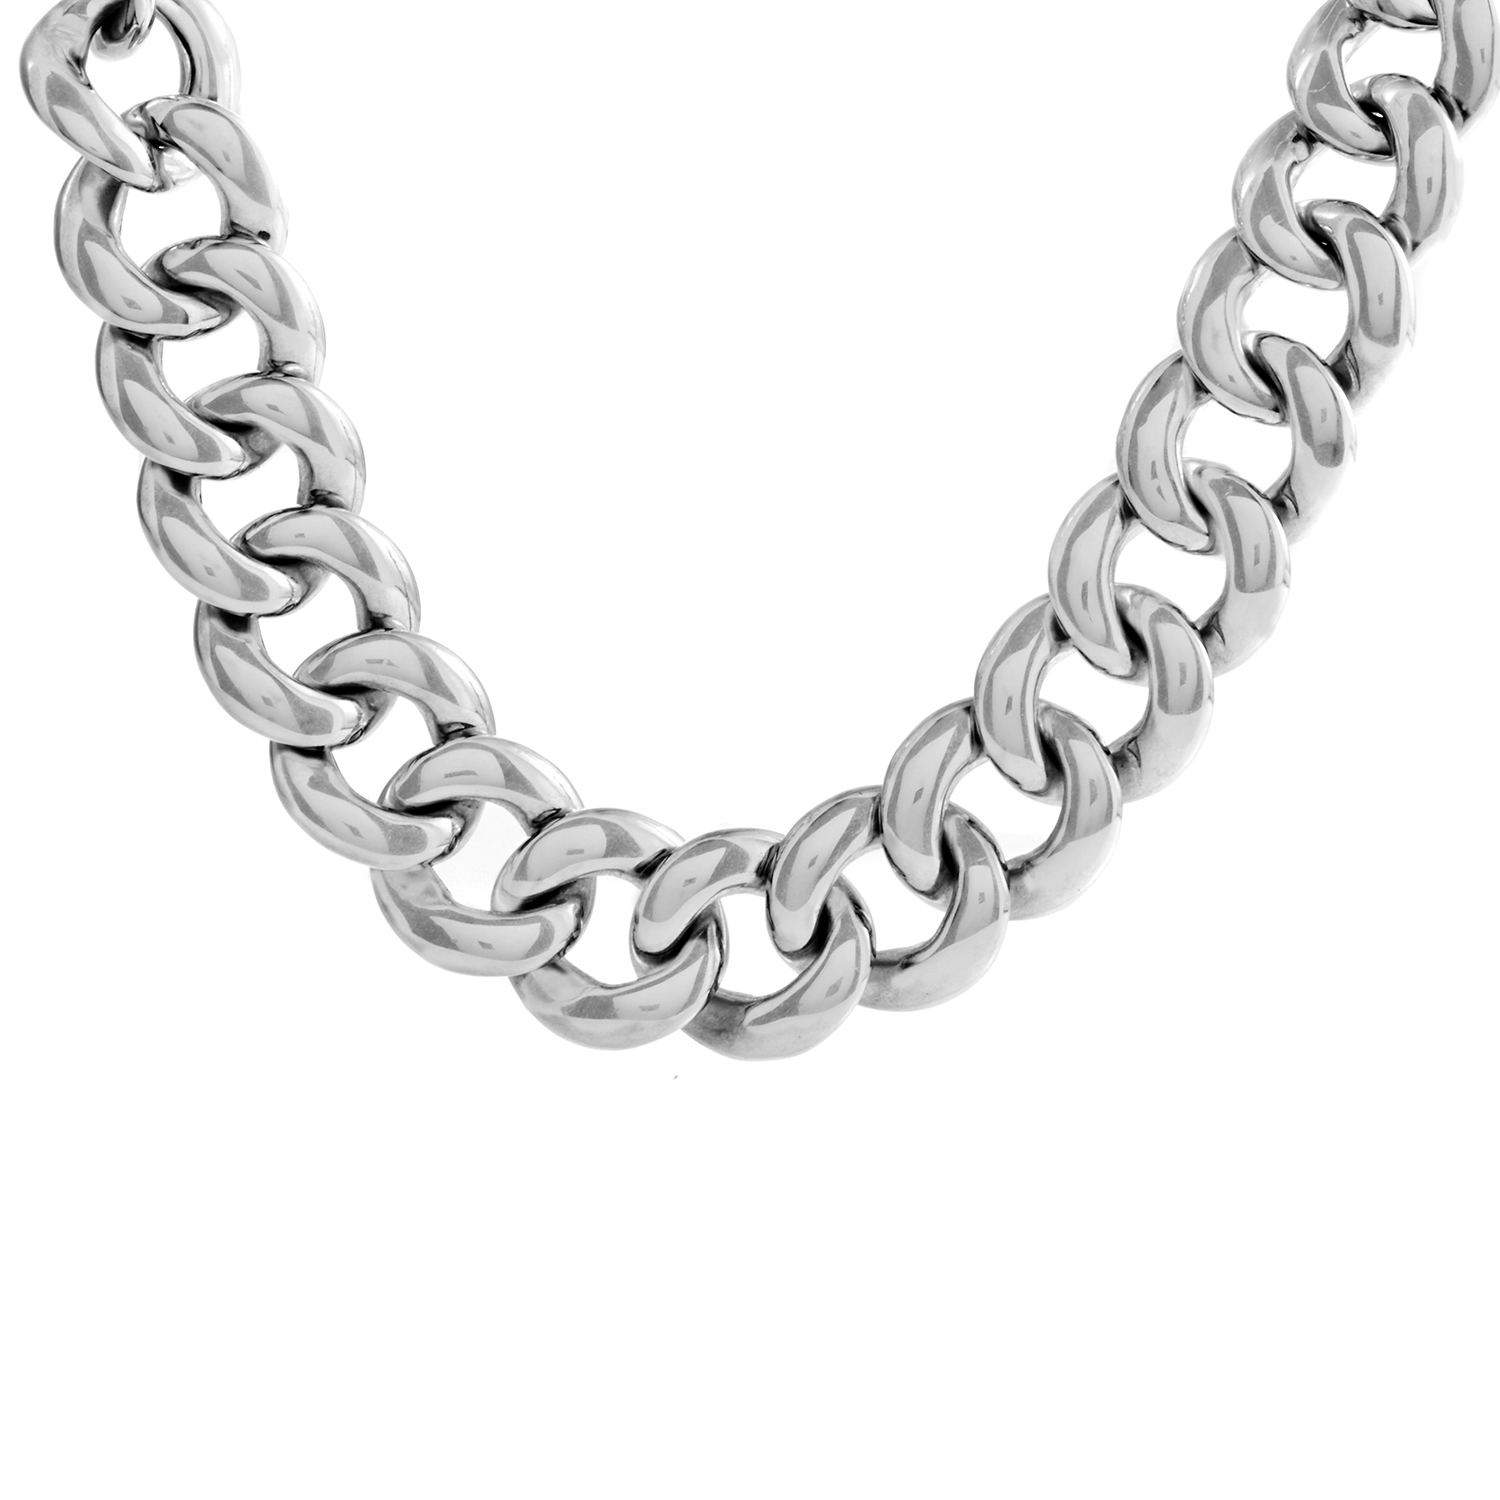 David Yurman Women's Sterling Silver & Diamond Link Collar Necklace